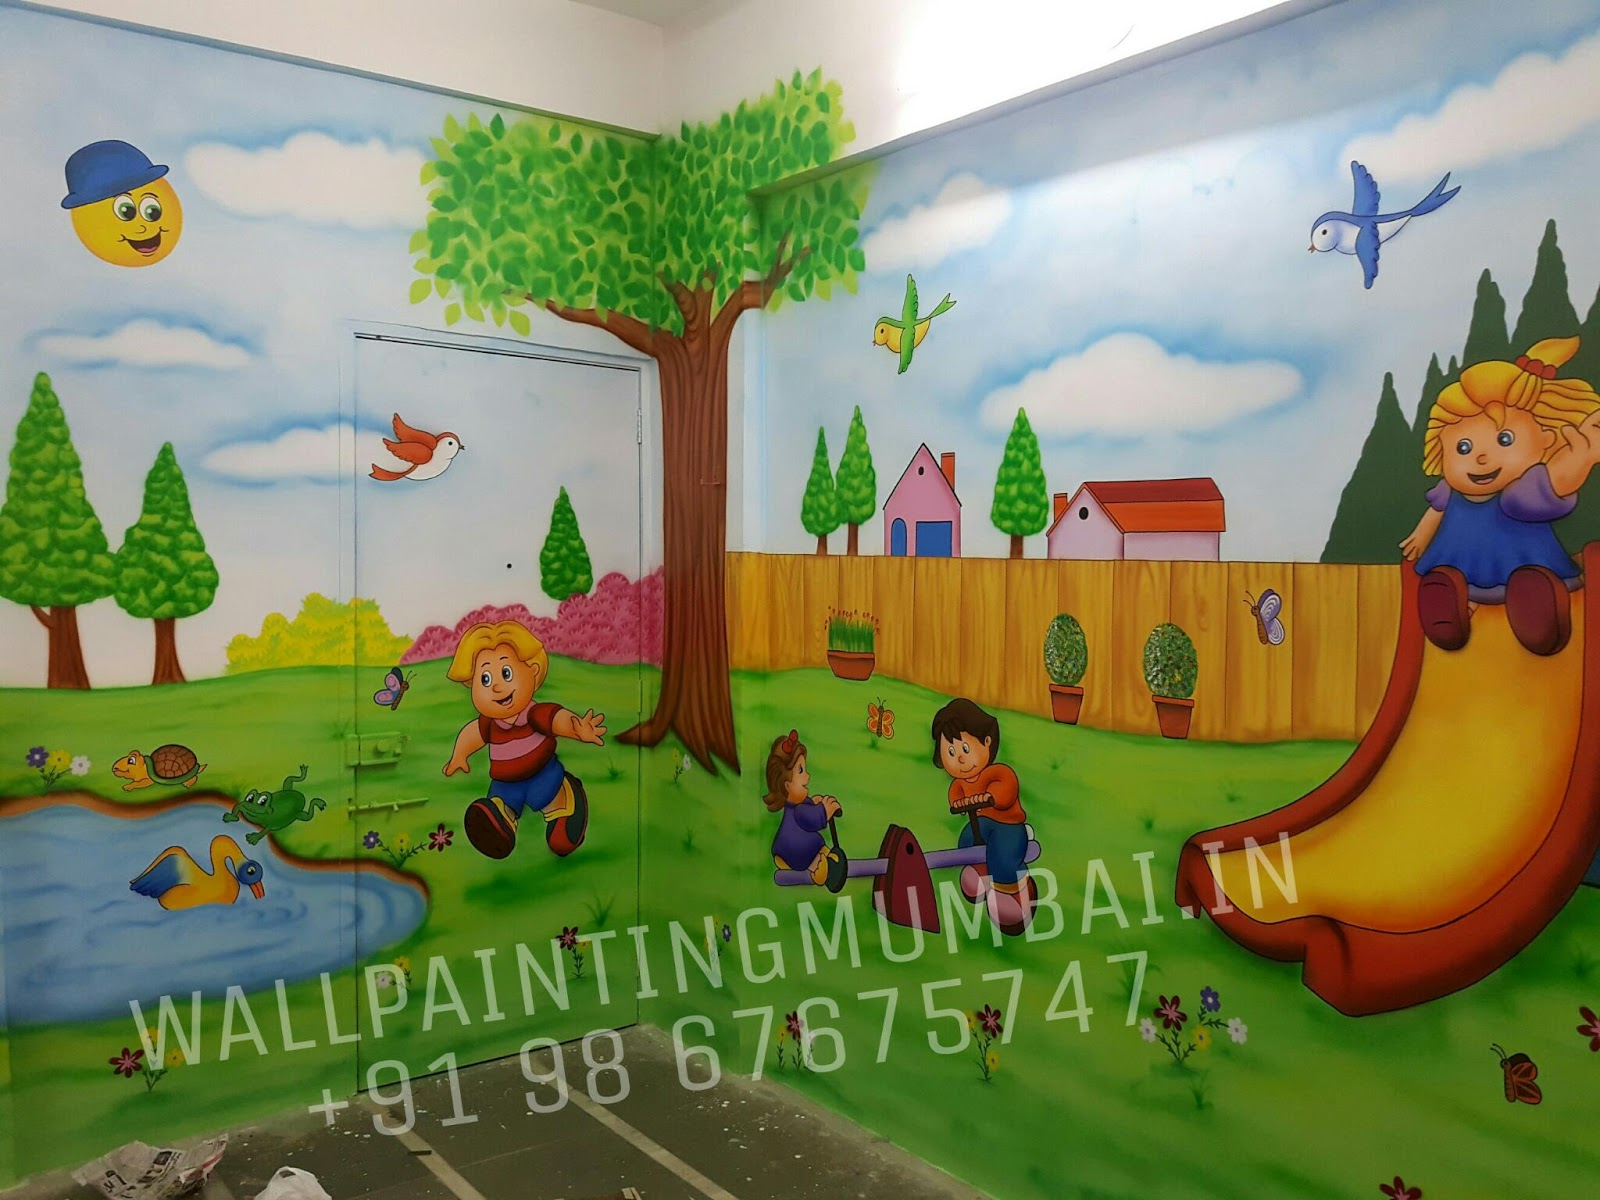 Play School Wall Painting Specialized Wall Cartoon Painting In Mumbai